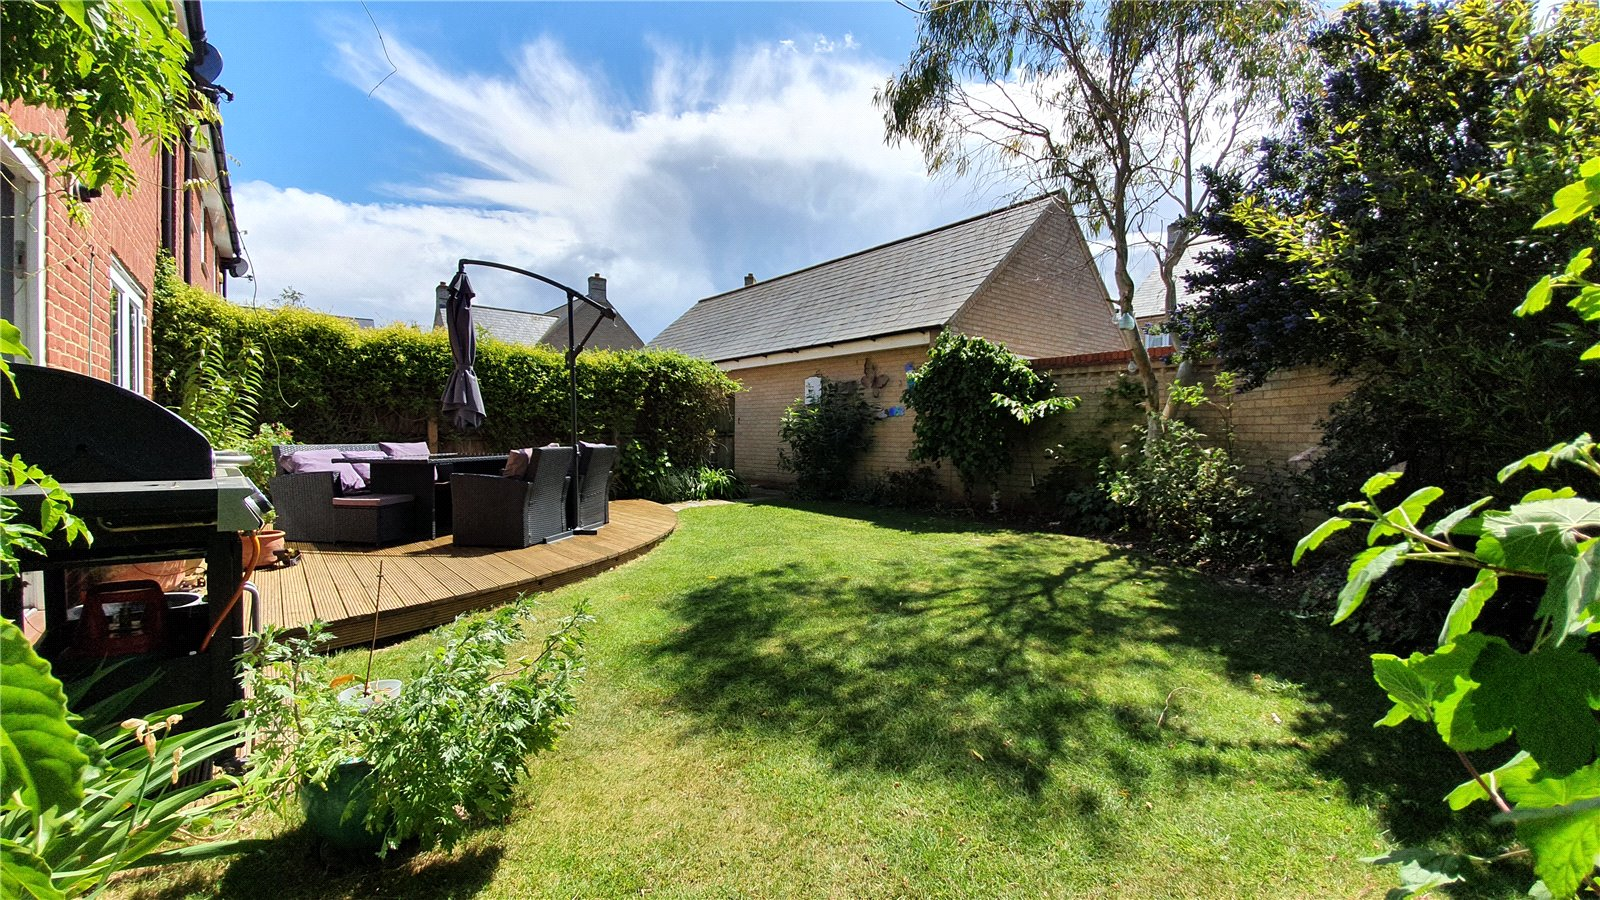 3 bed house for sale in Lannesbury Crescent, St Neots  - Property Image 15